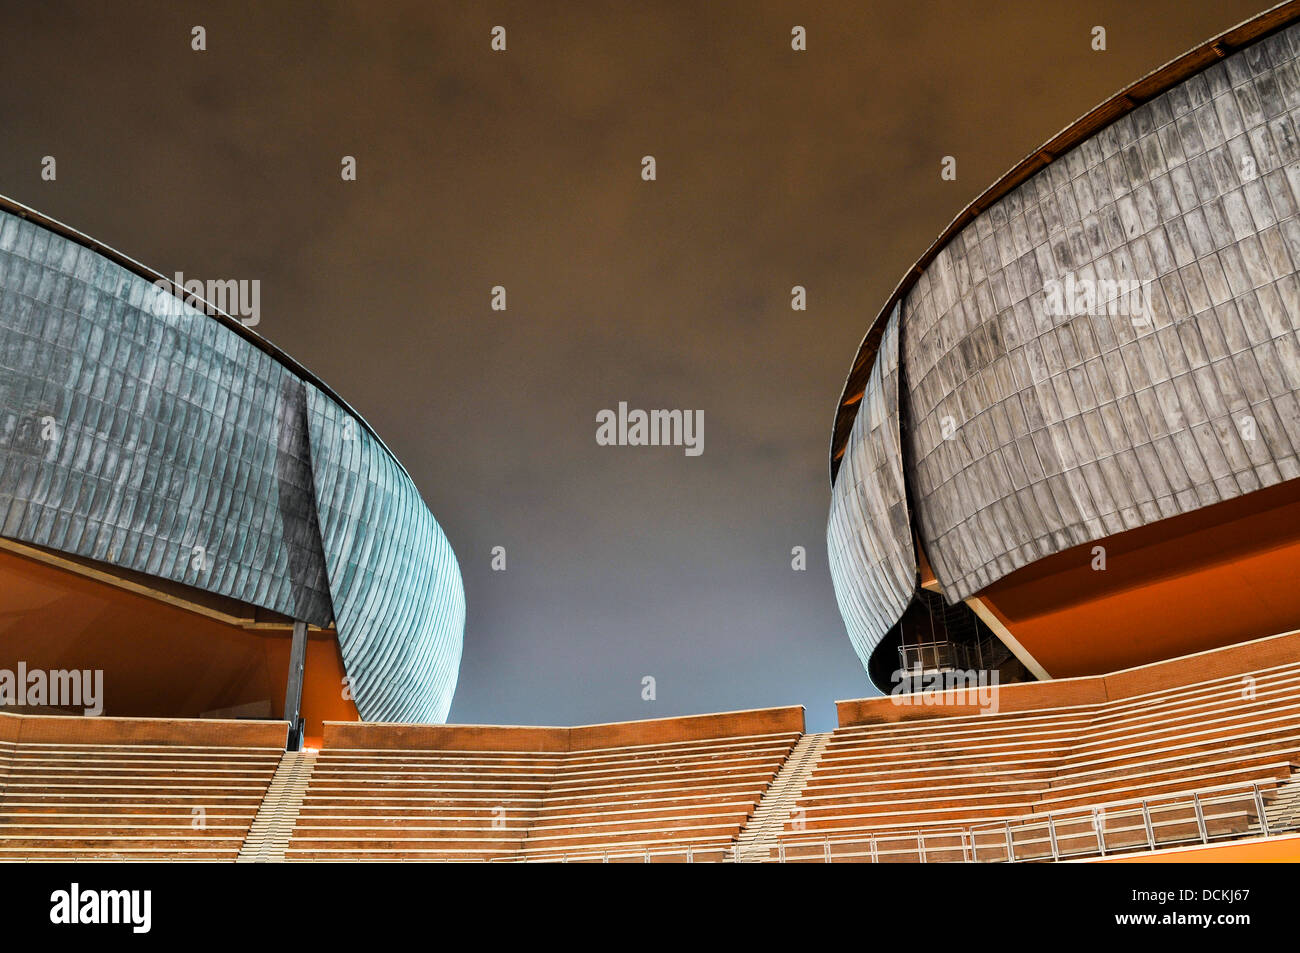 Parco Della Musica, Rome, Italy. Architect: Renzo Piano, 2002. Two auditoriums with steps. Stock Photo